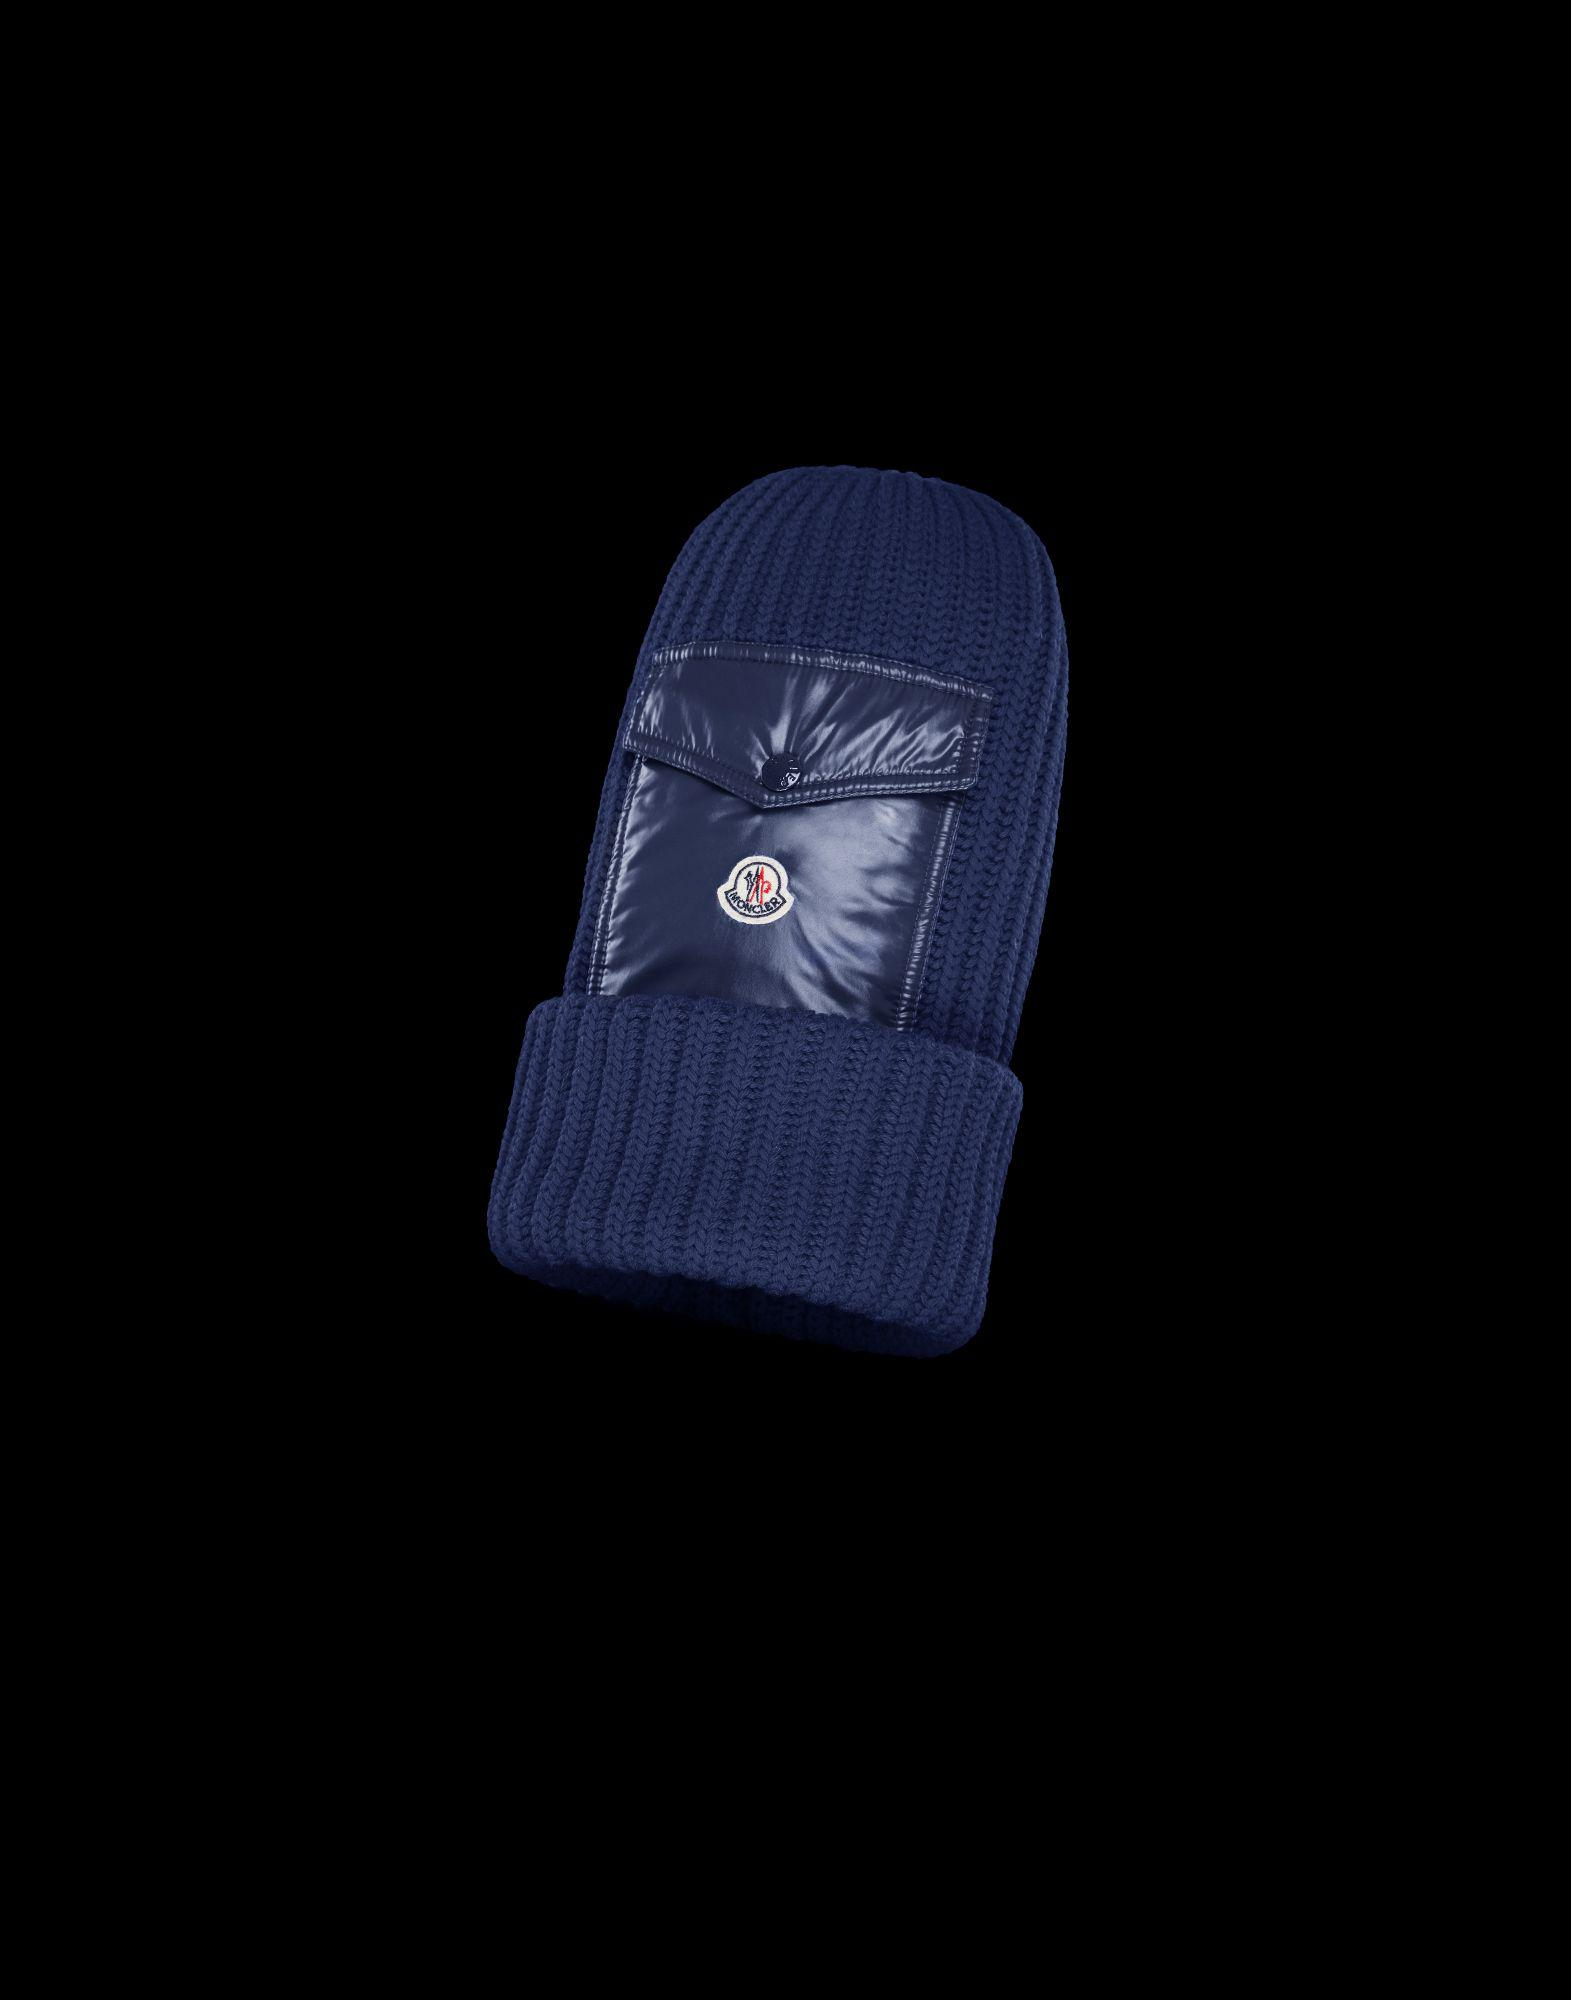 31a8664e35b Lyst - Moncler Hat in Blue for Men